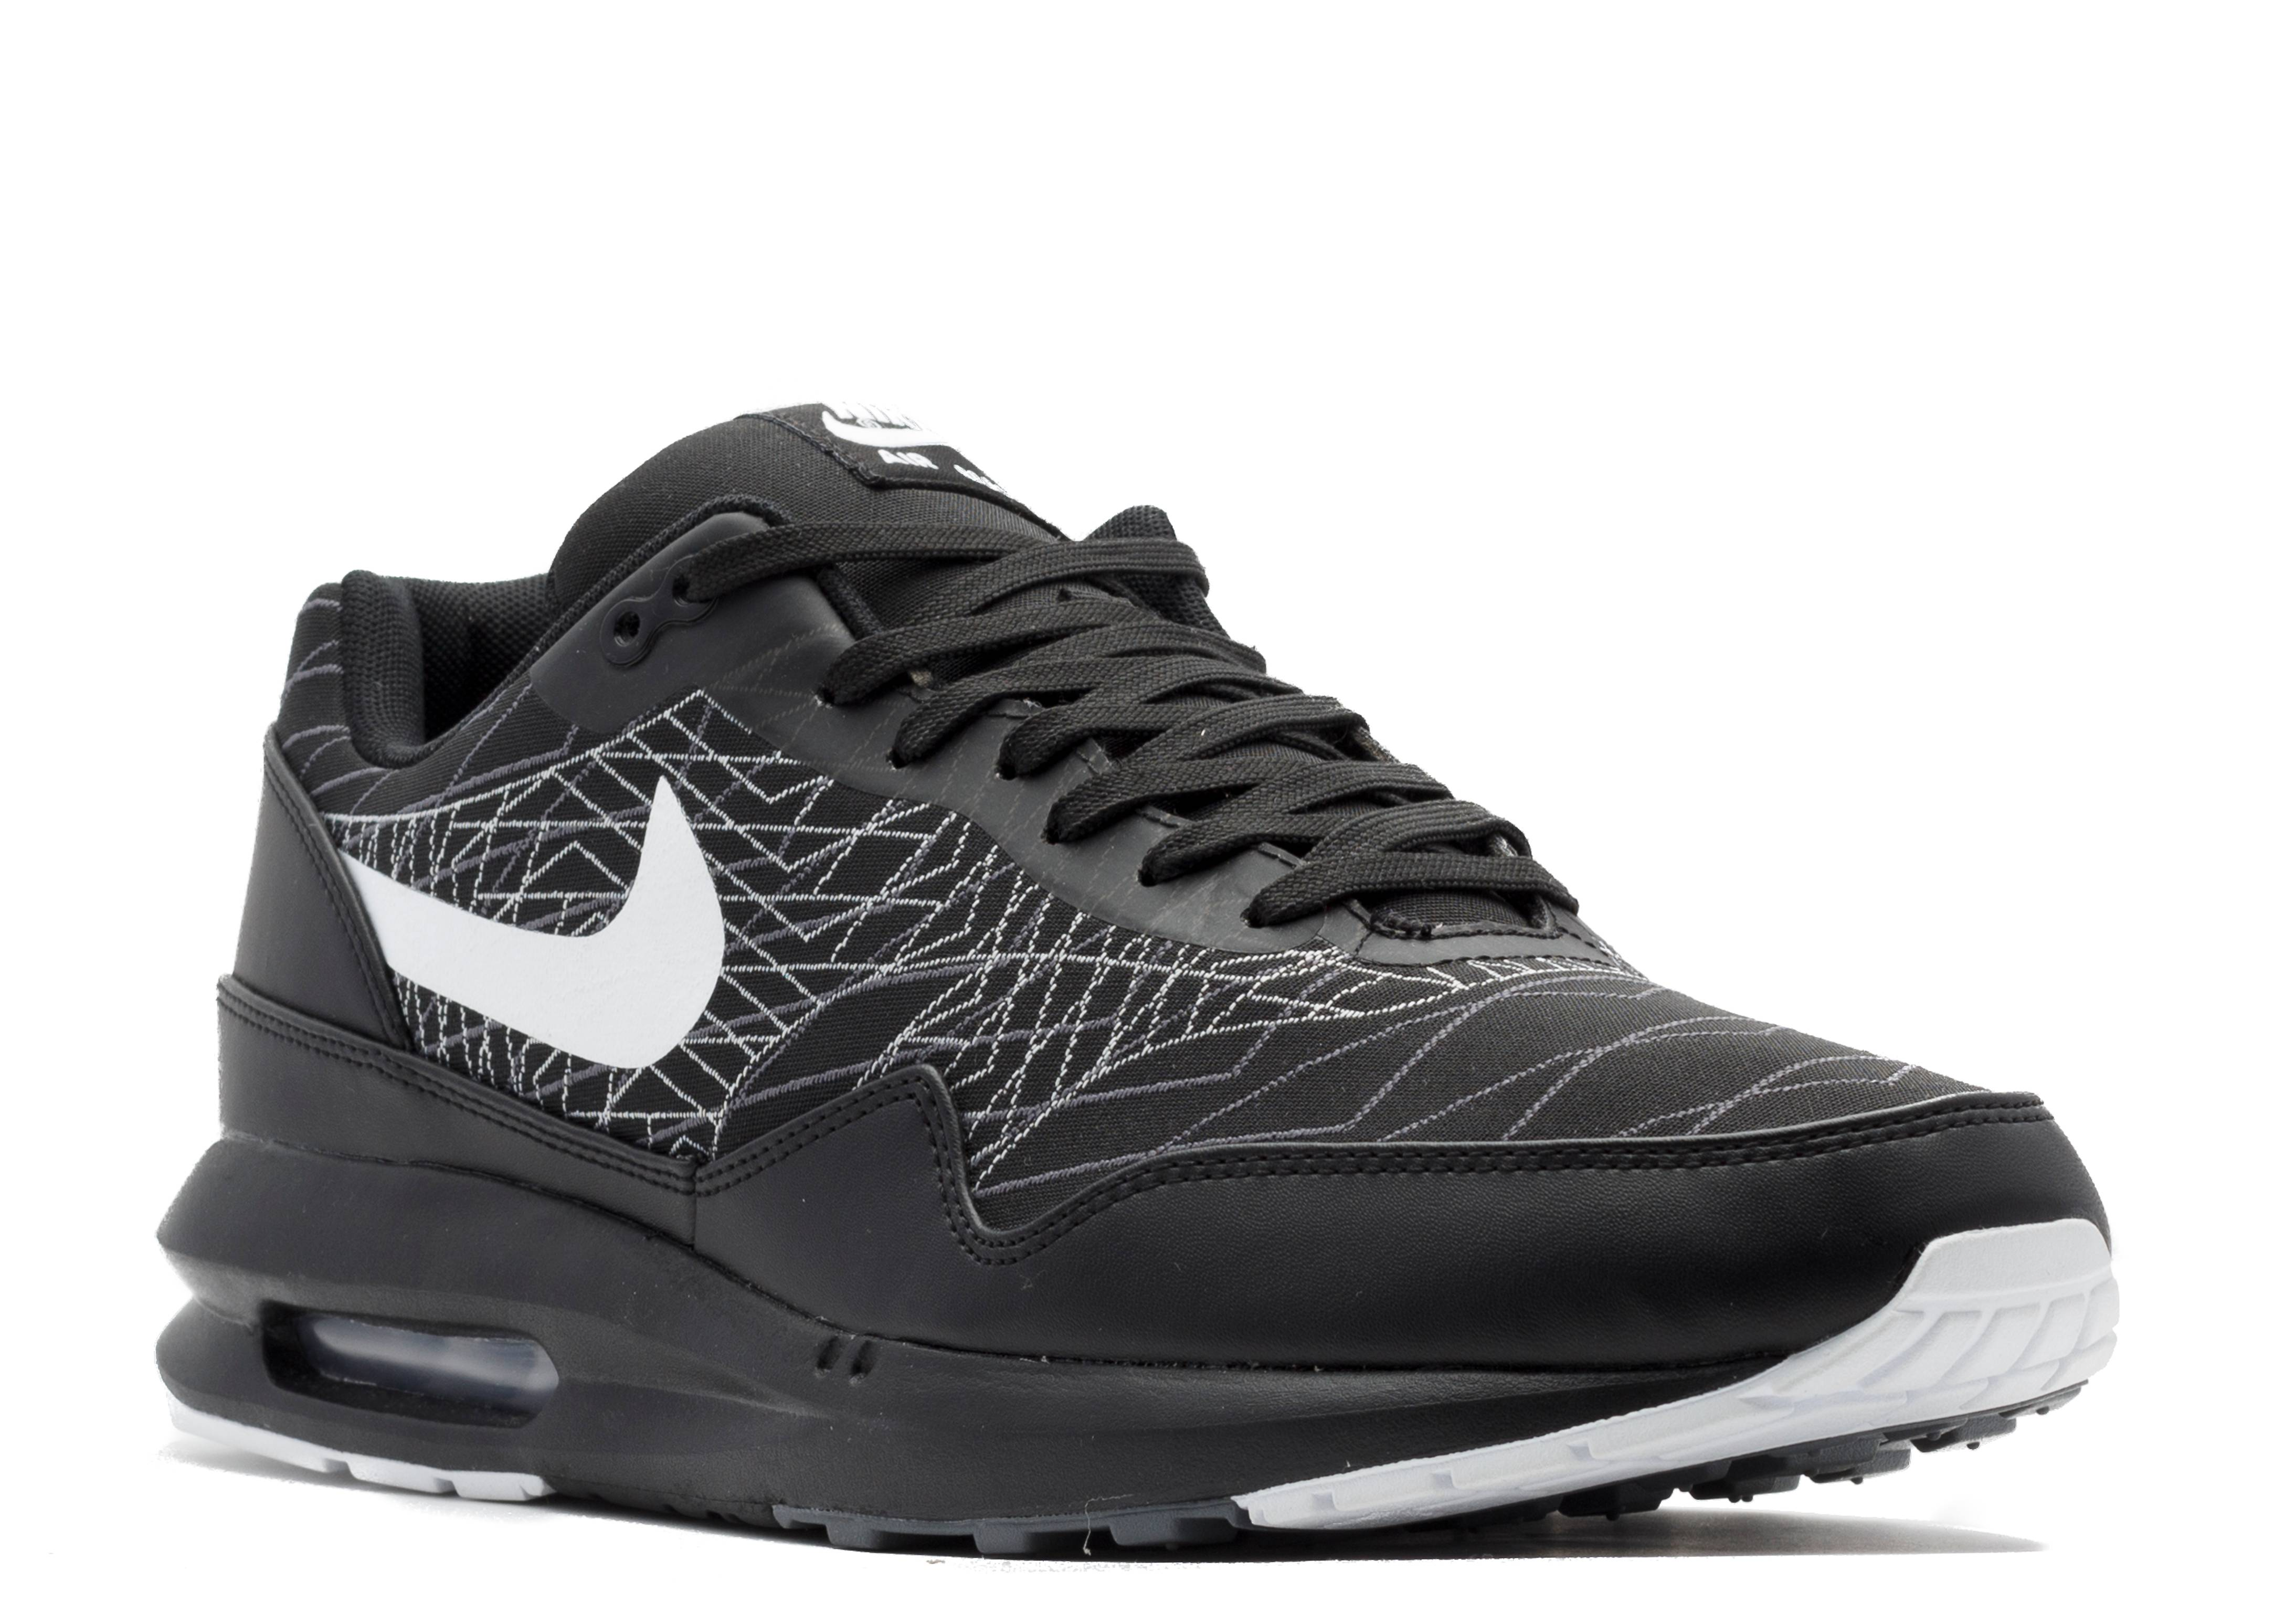 Air Max Lunar1 Deluxe Pack WearTesters